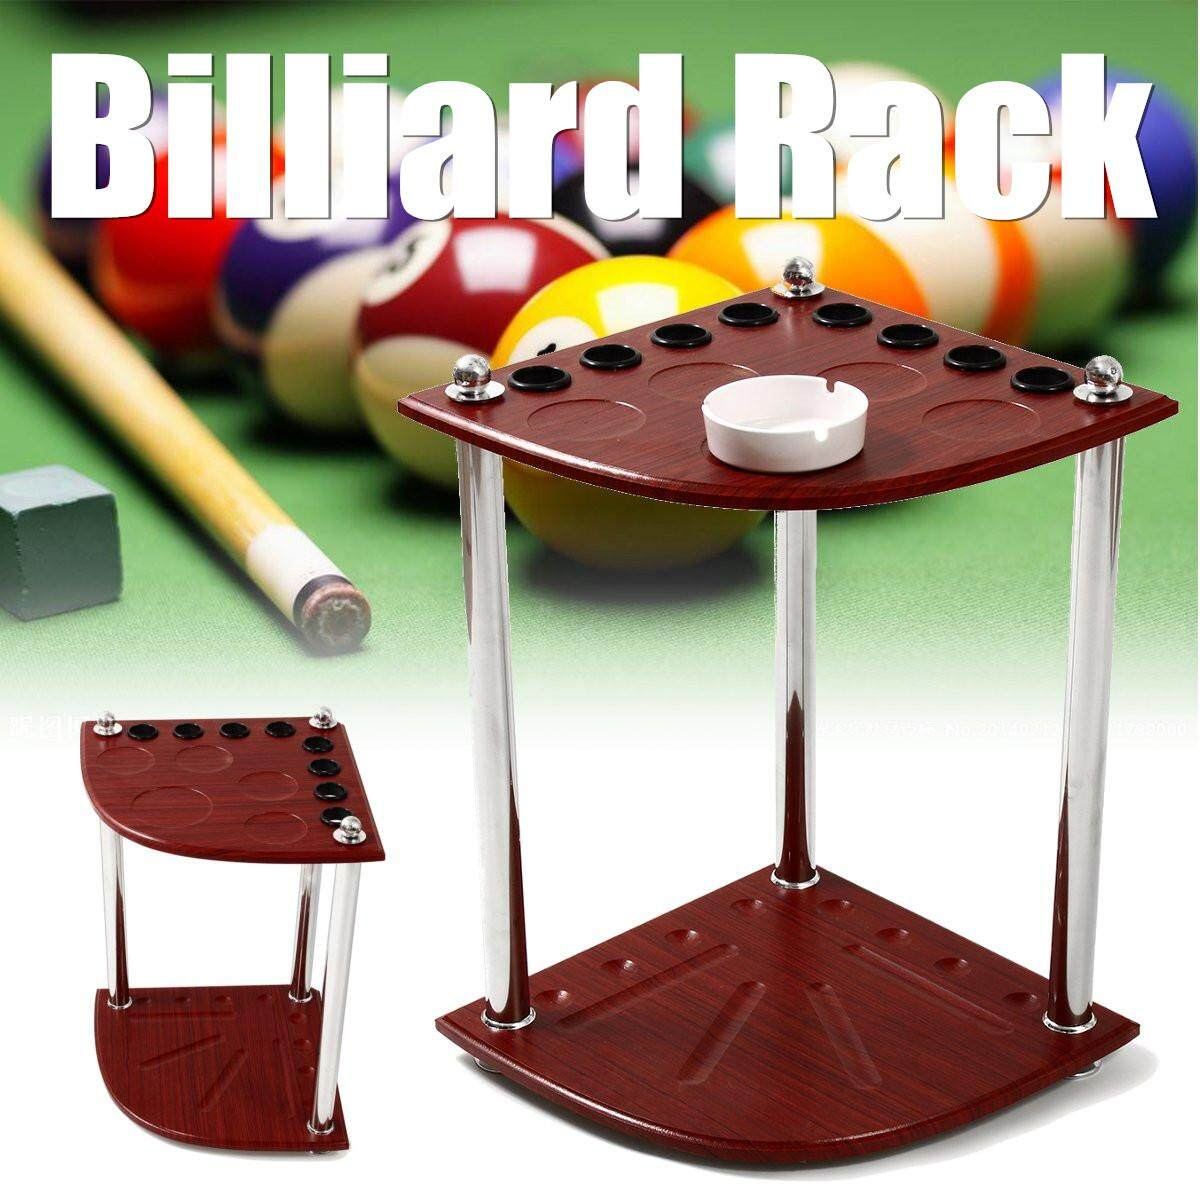 Wooden Corner Cue Rack Pool Snooker Table Balls Drink Rest Stick Holder By Qiaosha.